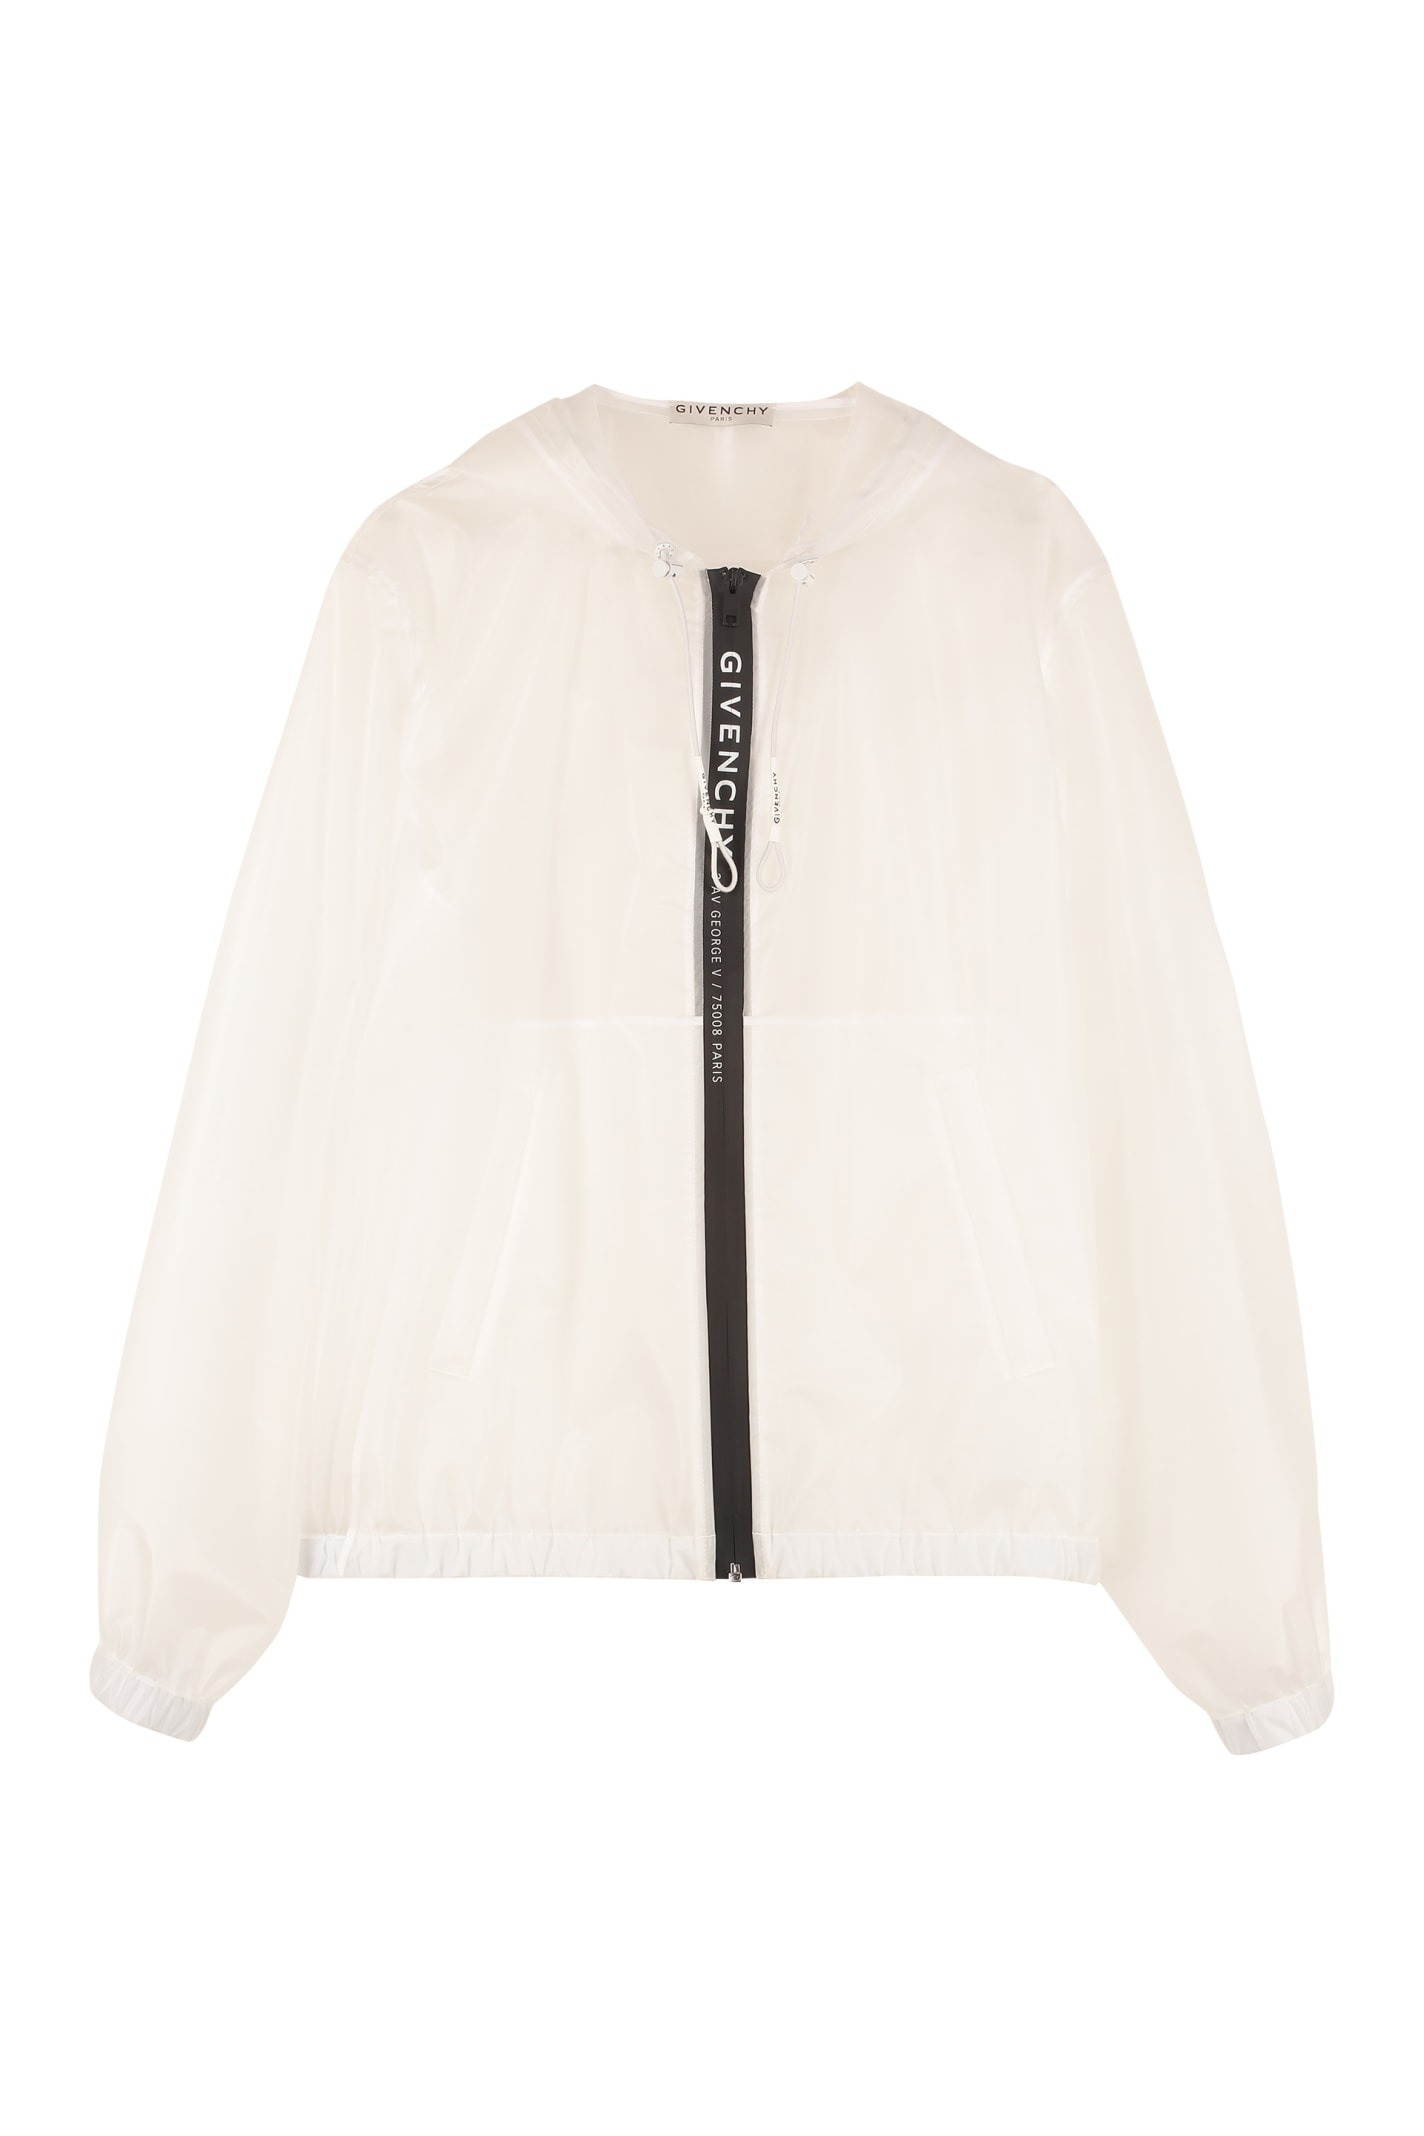 Givenchy Techno Fabric Jacket